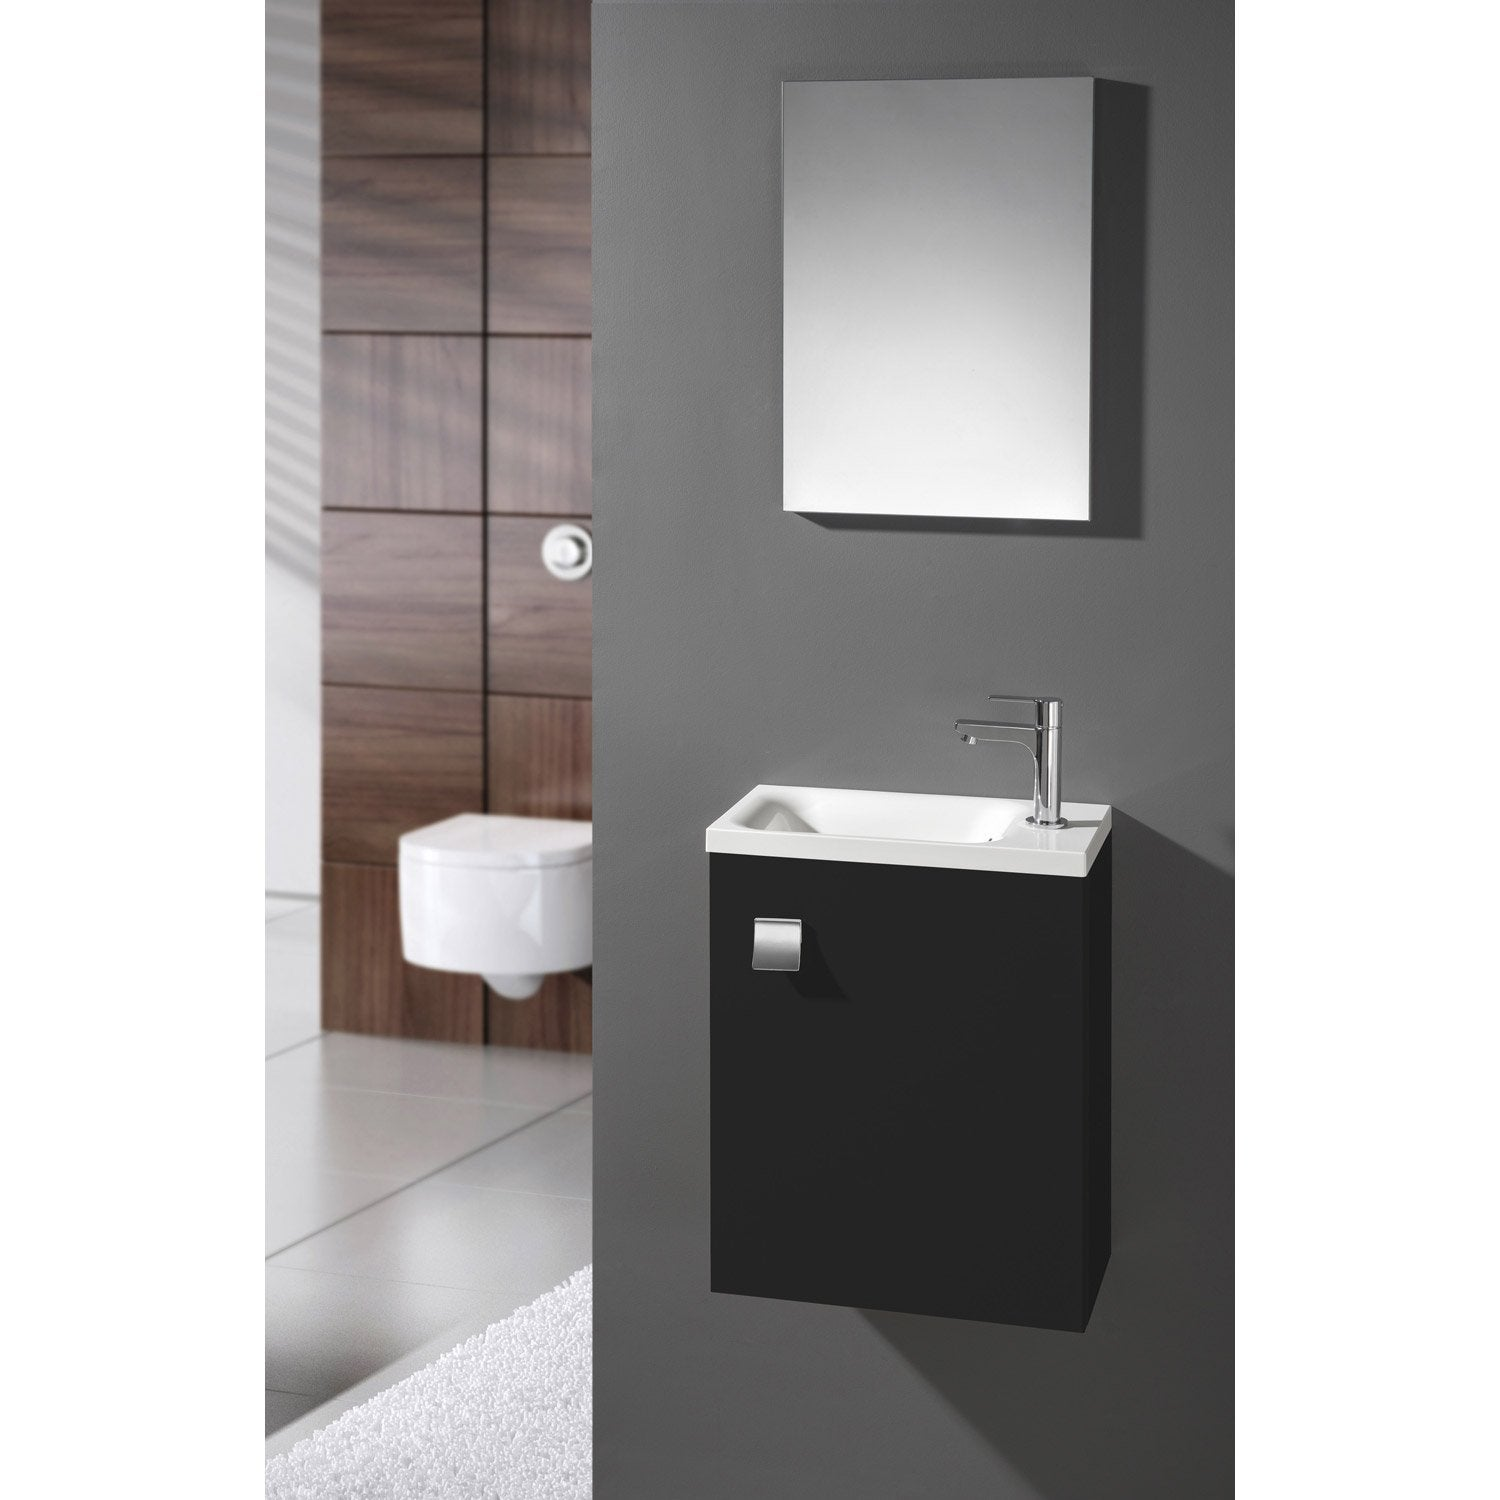 meuble lave mains avec miroir noir noir n 0 coin d 39 o. Black Bedroom Furniture Sets. Home Design Ideas